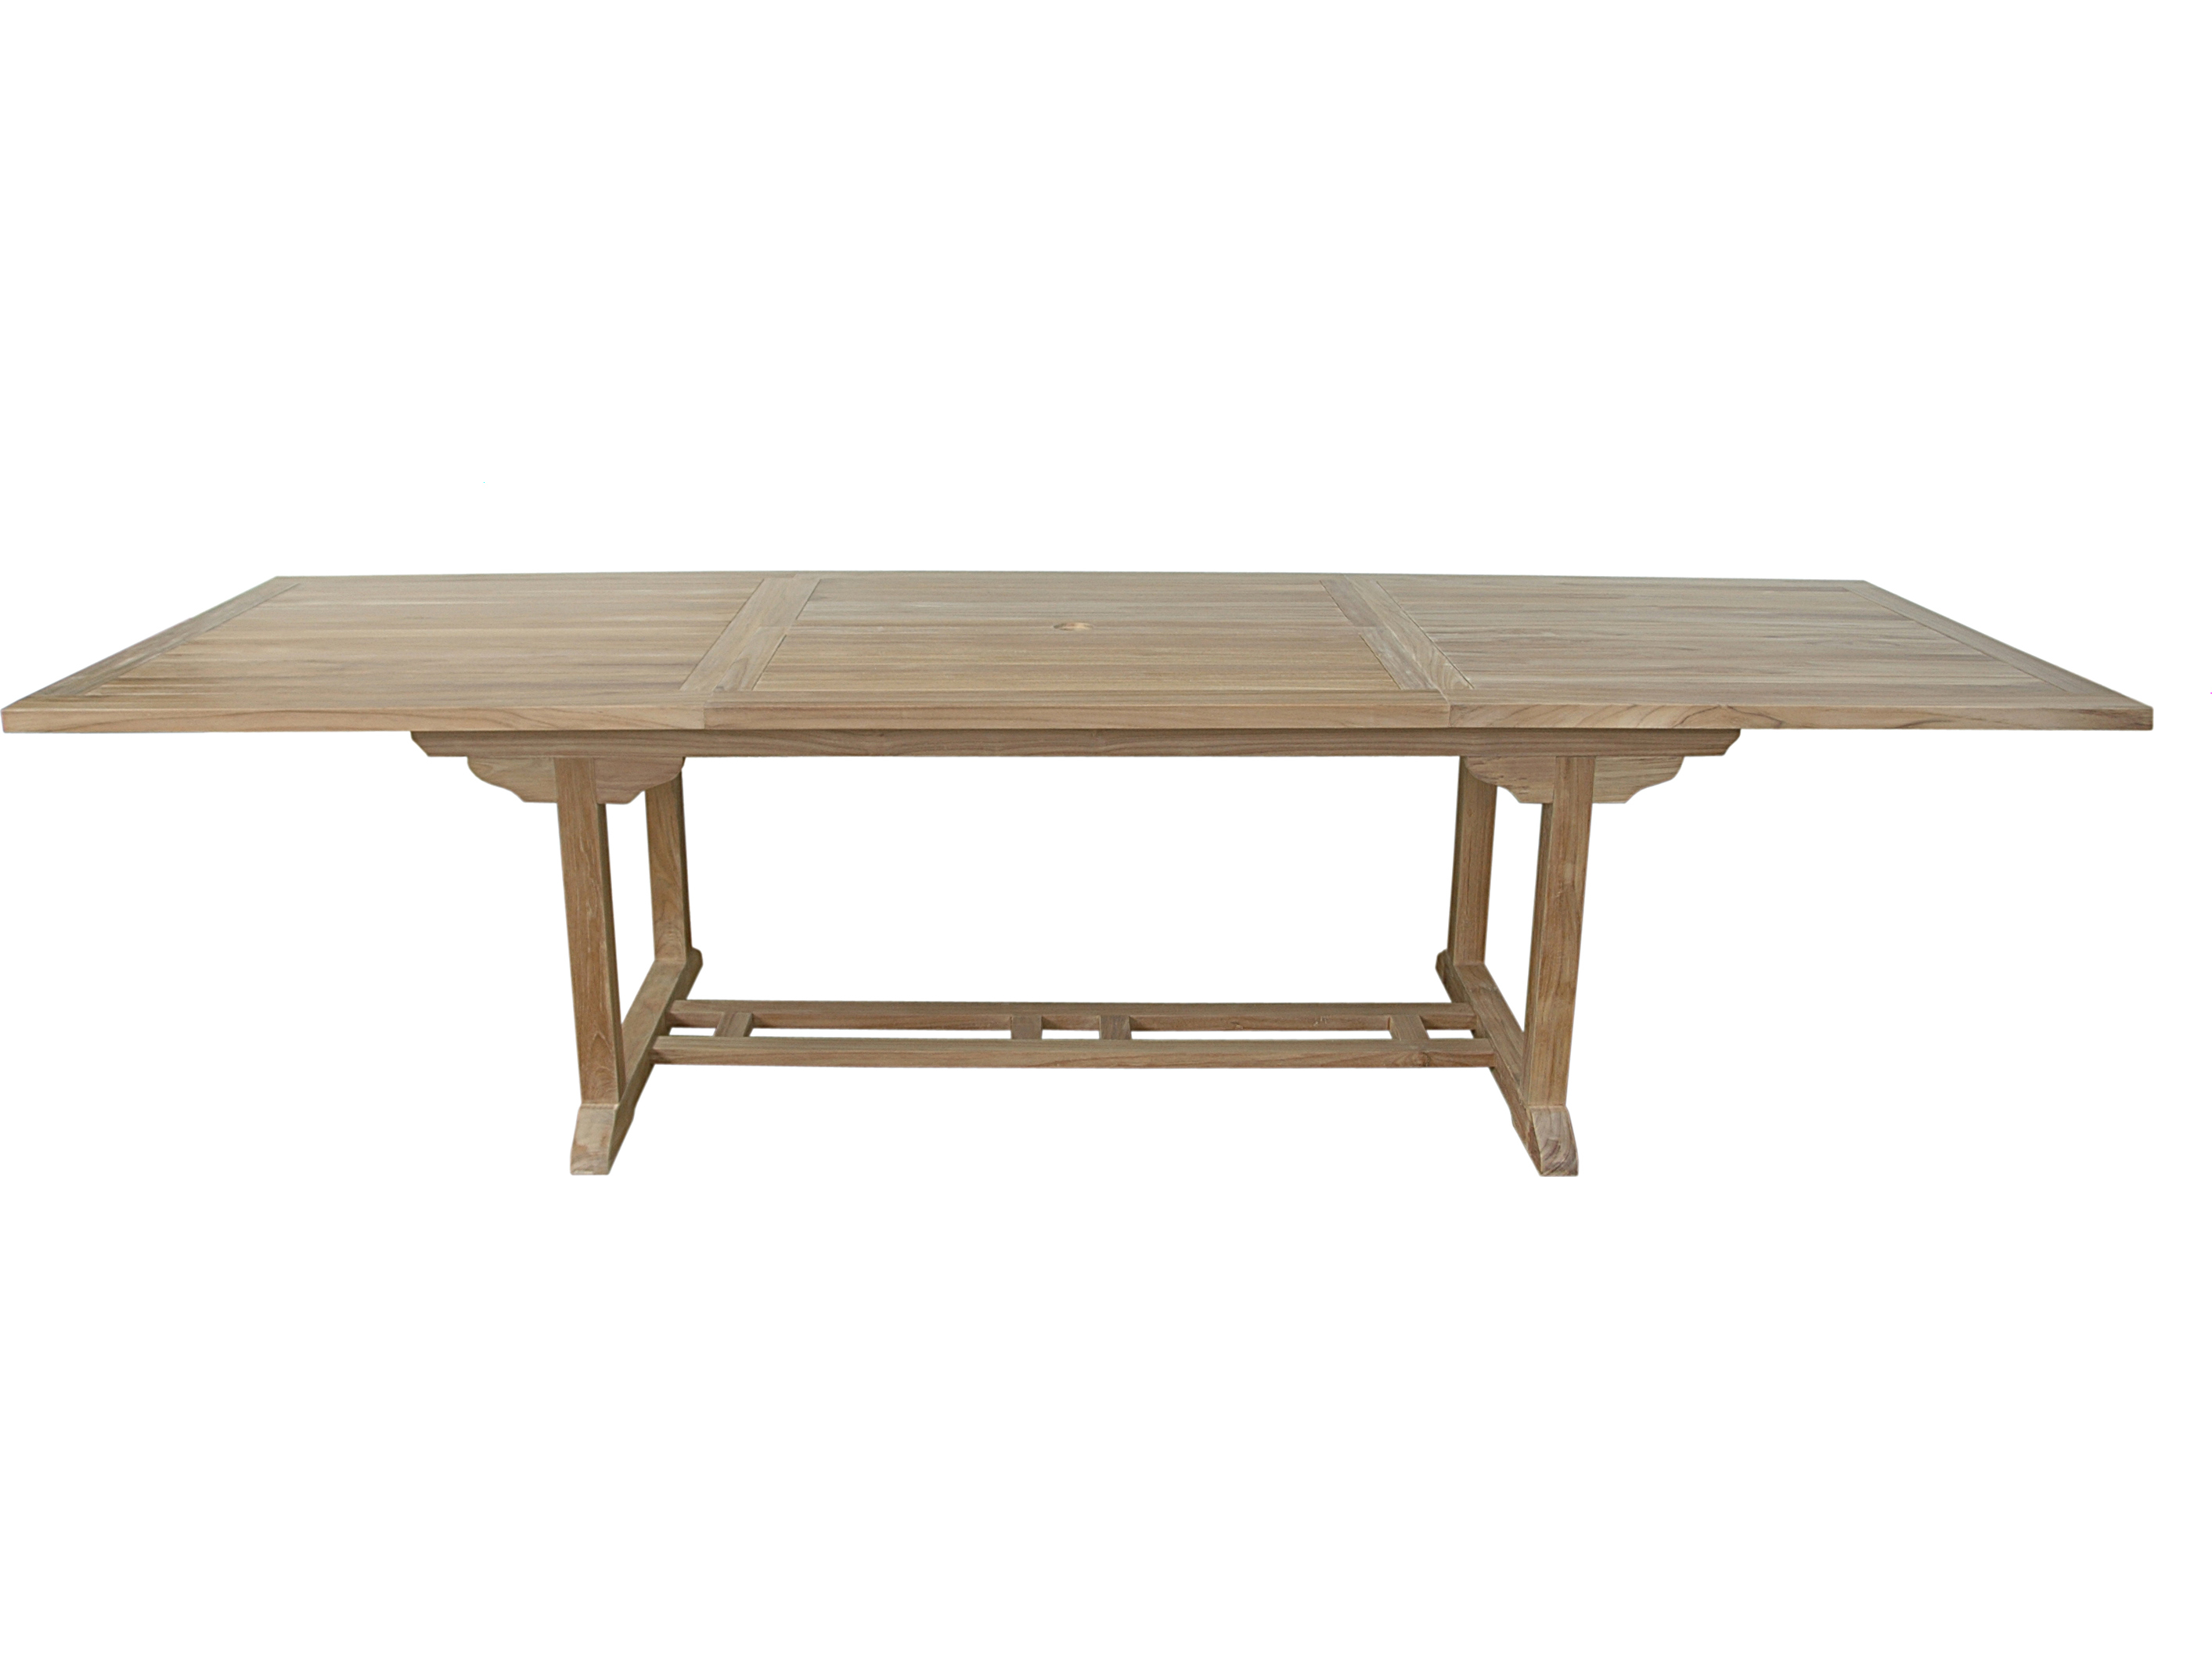 Anderson Teak Bahama 10 Foot Natural 77 118u0027u0027W X 39u0027u0027D Rectangular  Extension Dining Table